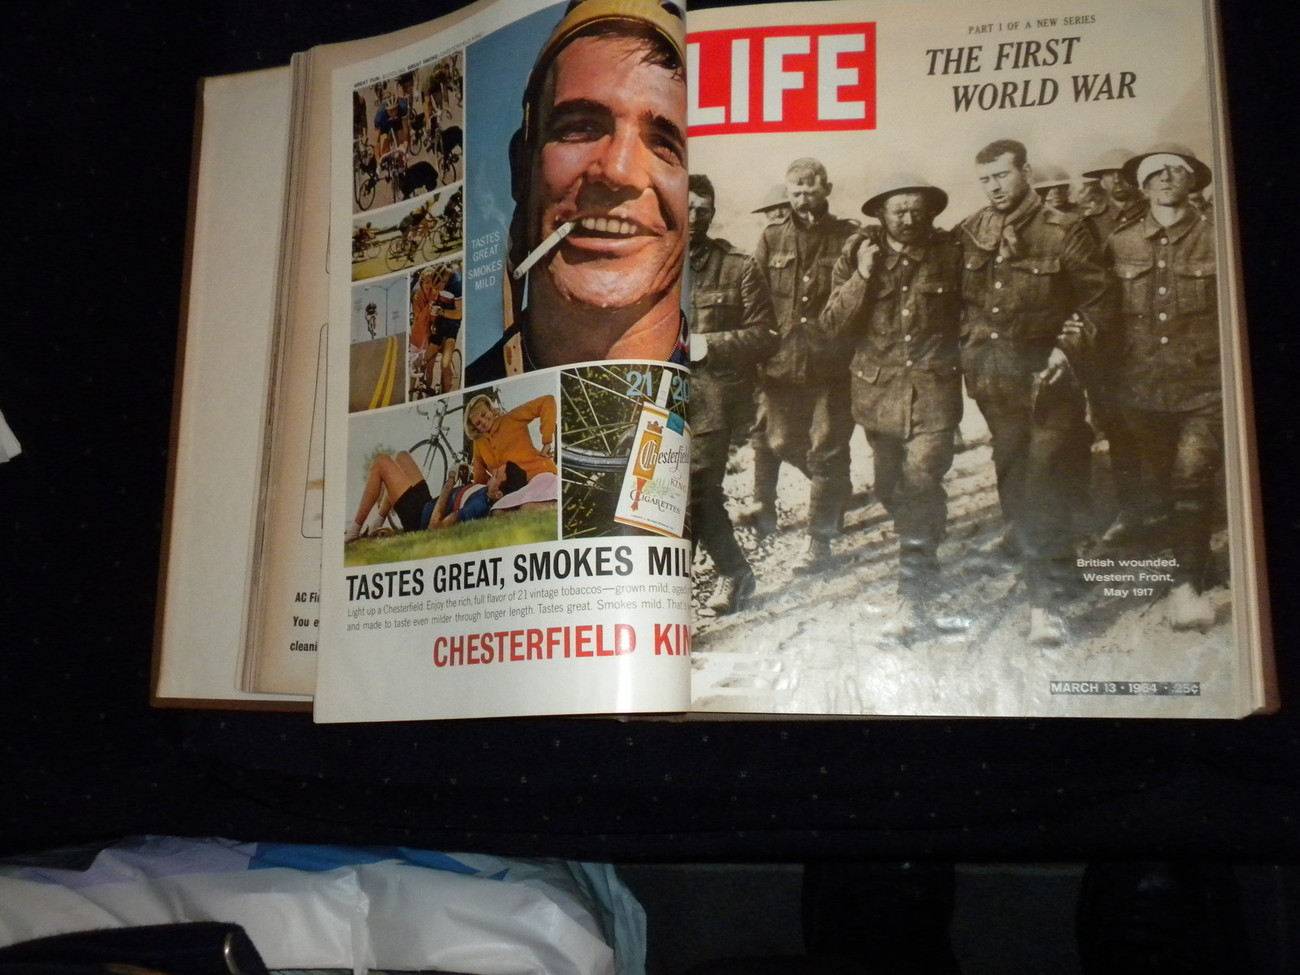 4 Bound March 1964 Life Magazines Cassius Clay, Walter Alston, Queen Eliz, WWI